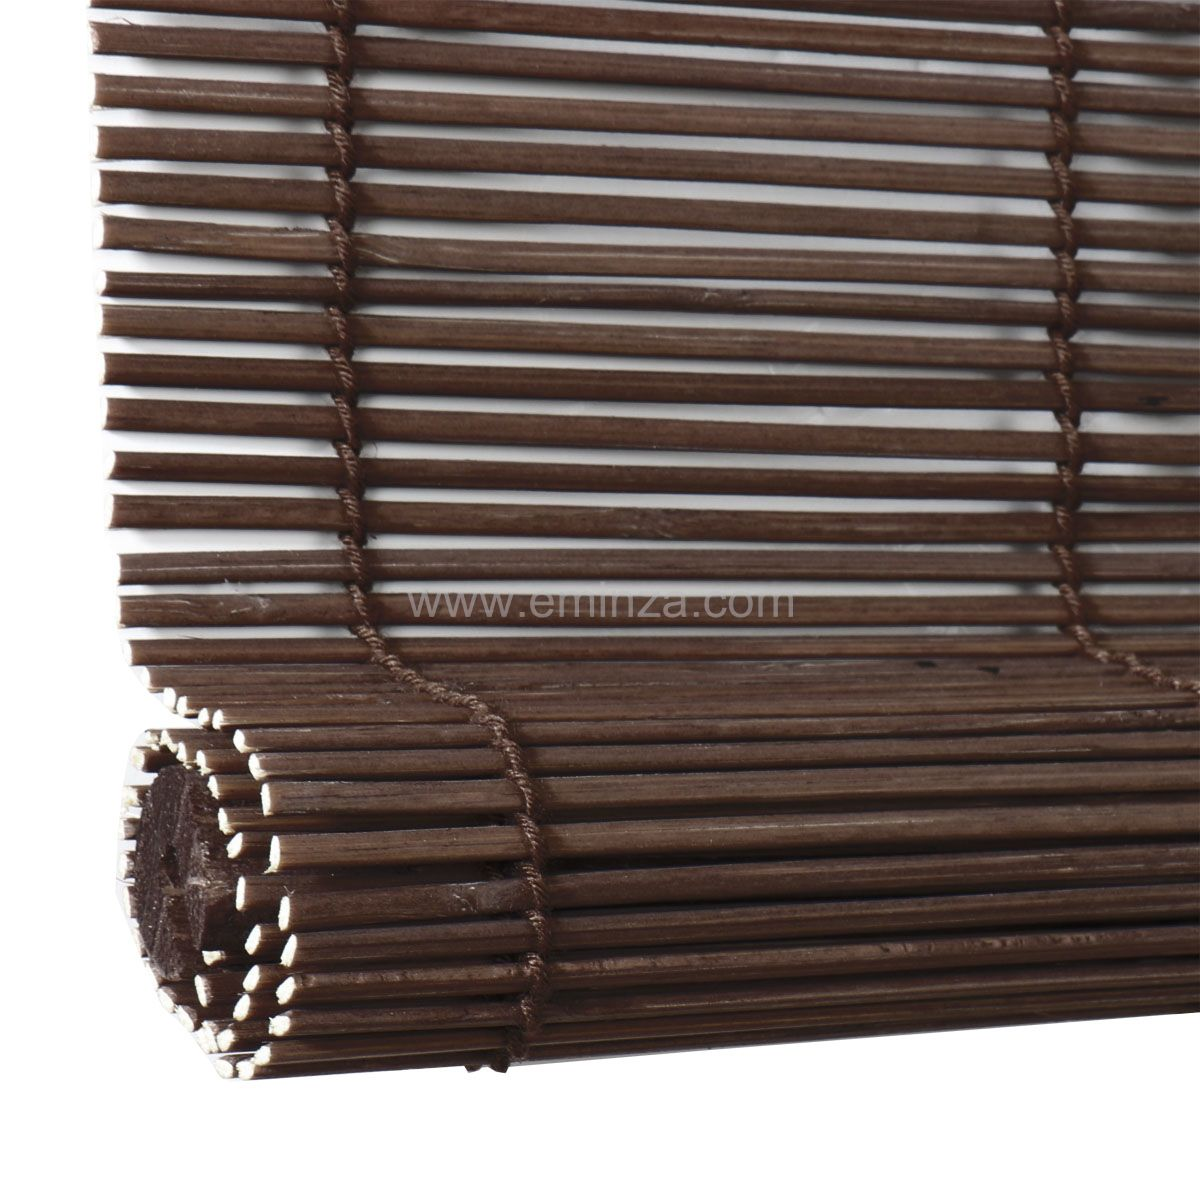 store enrouleur baguettes 40 x 90 cm bambou chocolat store enrouleur eminza. Black Bedroom Furniture Sets. Home Design Ideas